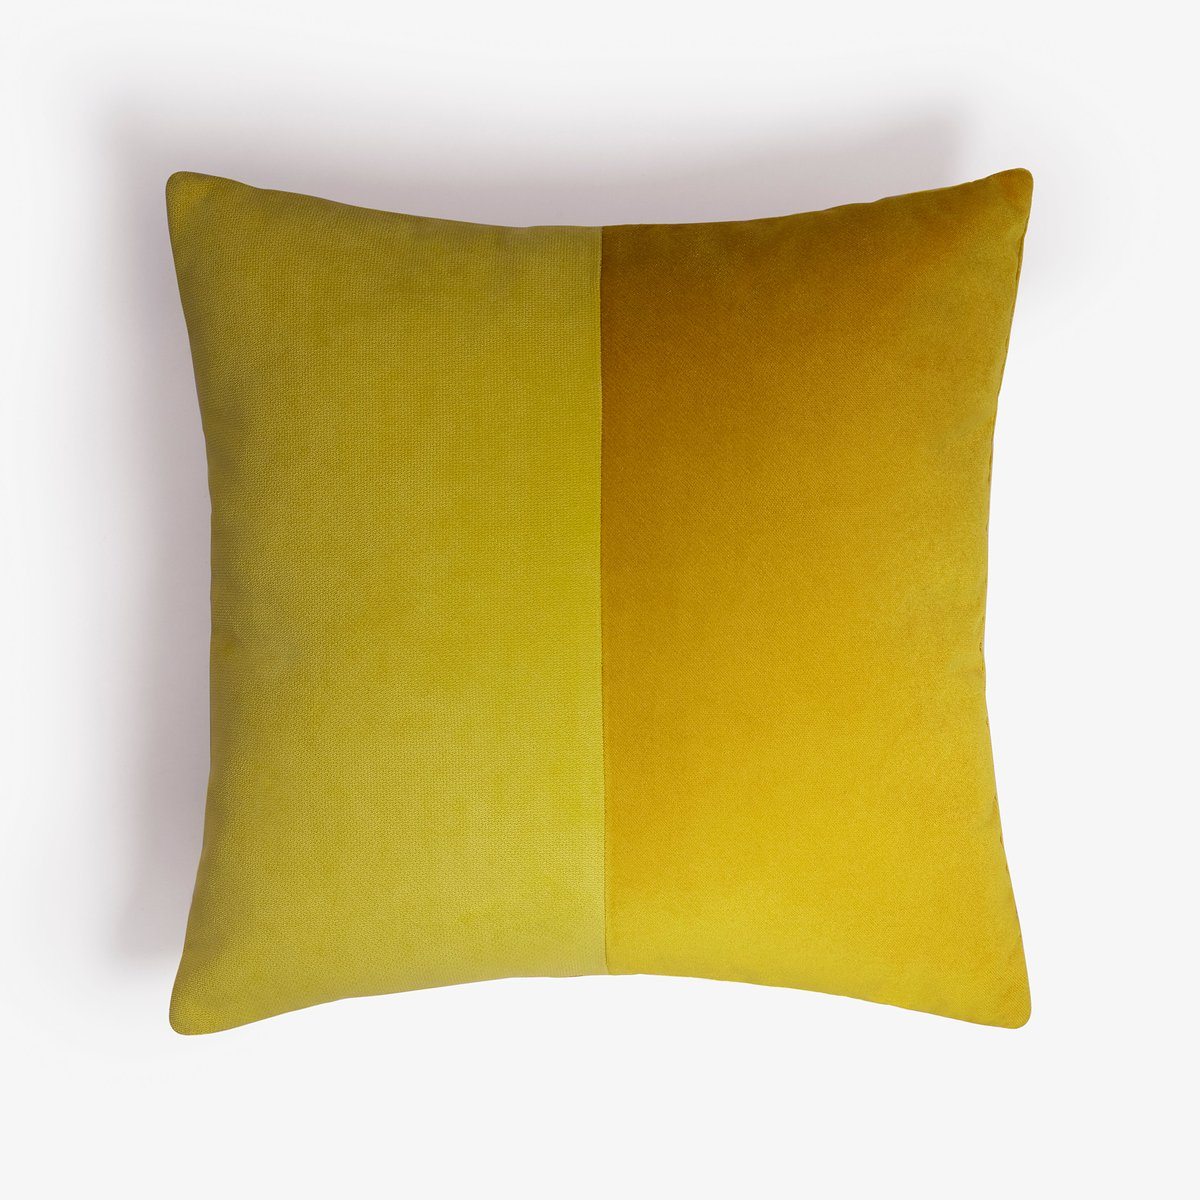 double mustard velvet cushion cover by lorenza briola